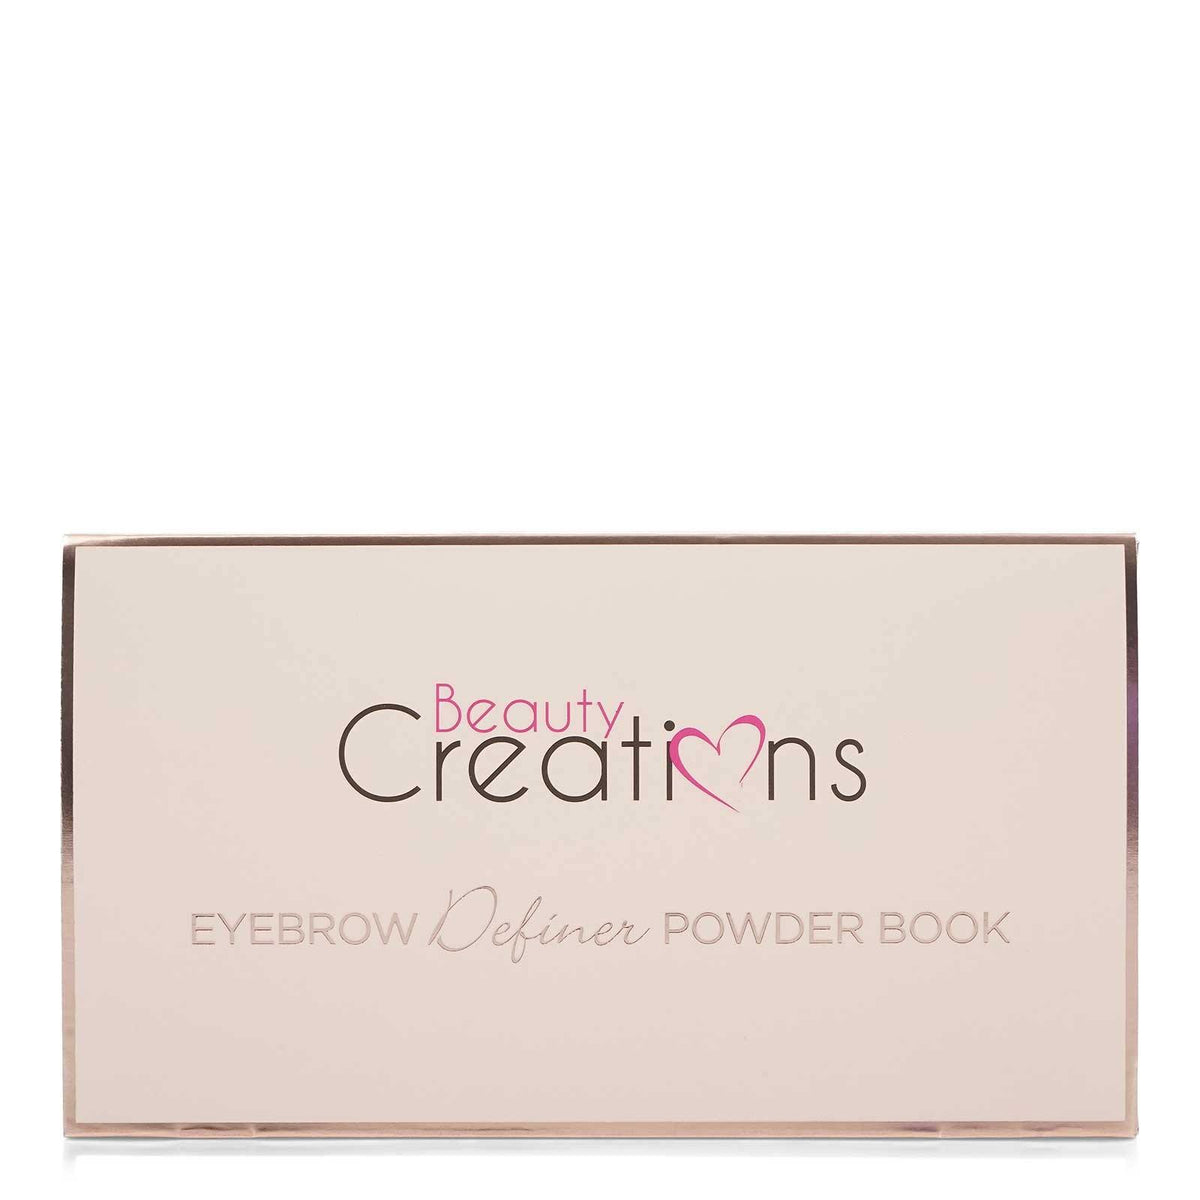 BEAUTY CREATIONS EYEBROW DEFINER POWDER BOOK- BF BB01 (12/cs)